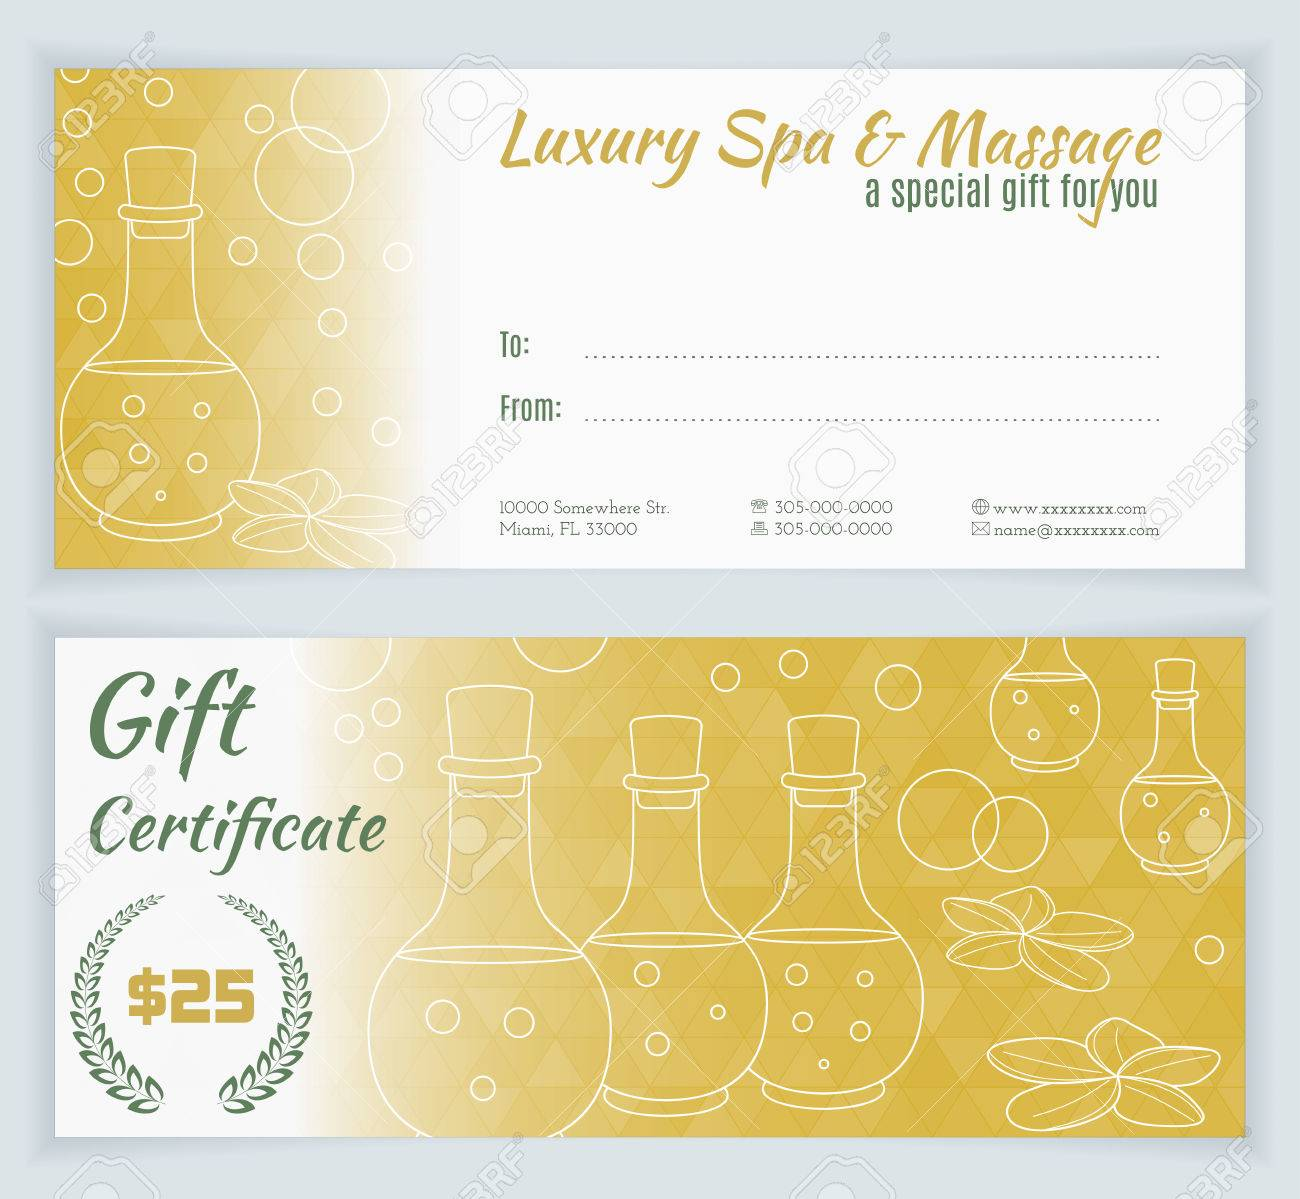 Spa massage gift certificate template hand drawn bottles of spa massage gift certificate template hand drawn bottles of mineral oils and plumeria xflitez Images